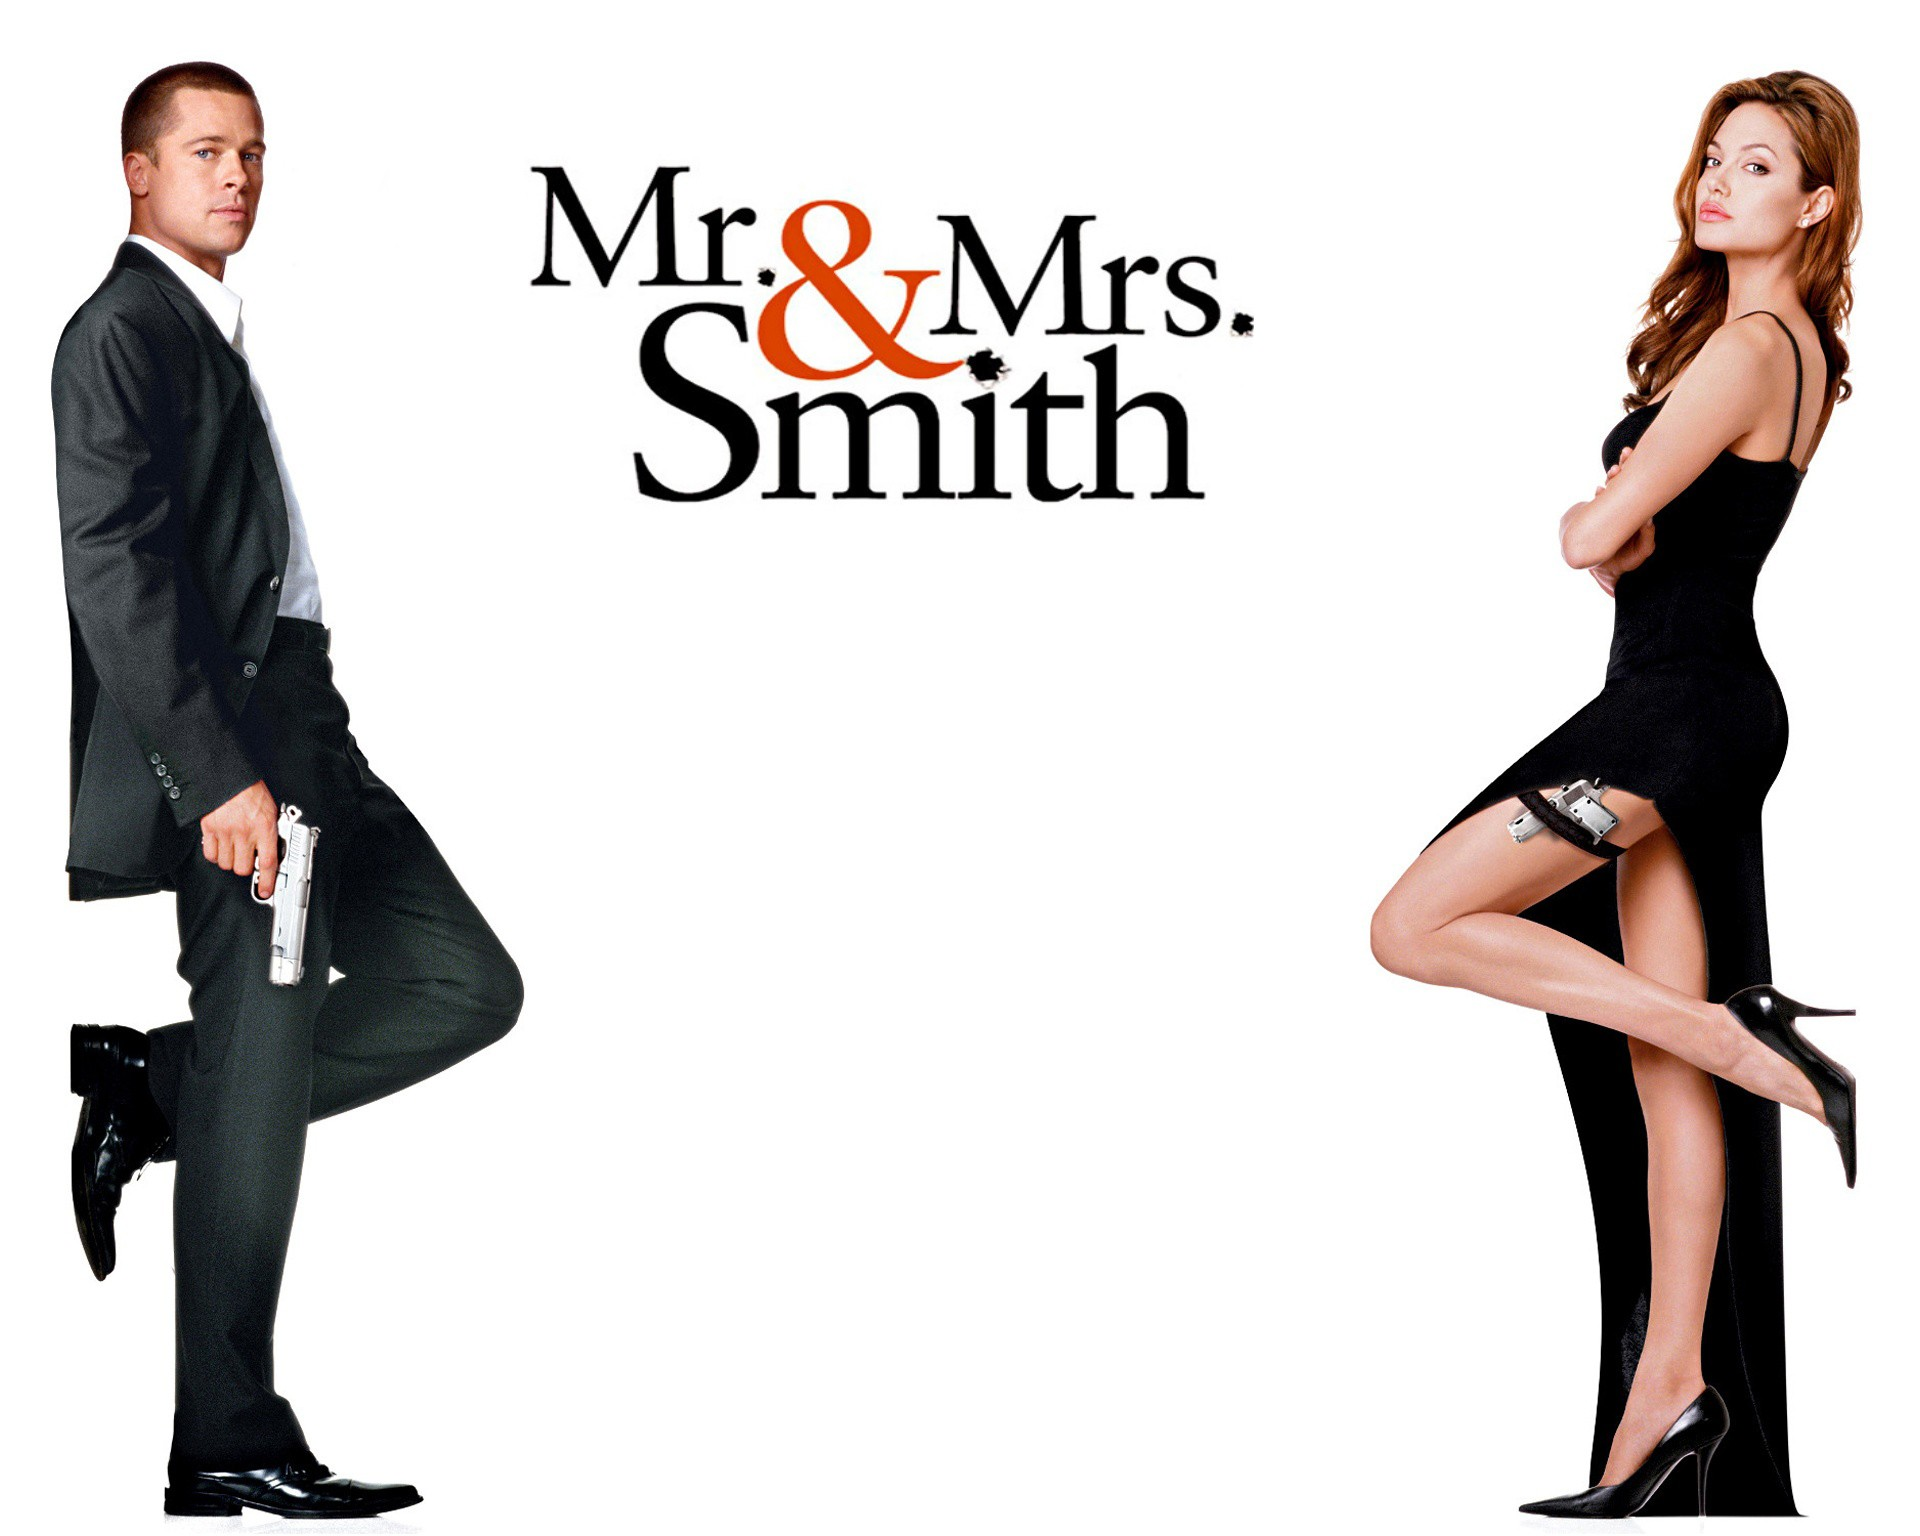 Mr.&Mrs. スミス(Mr. & Mrs. Smith)